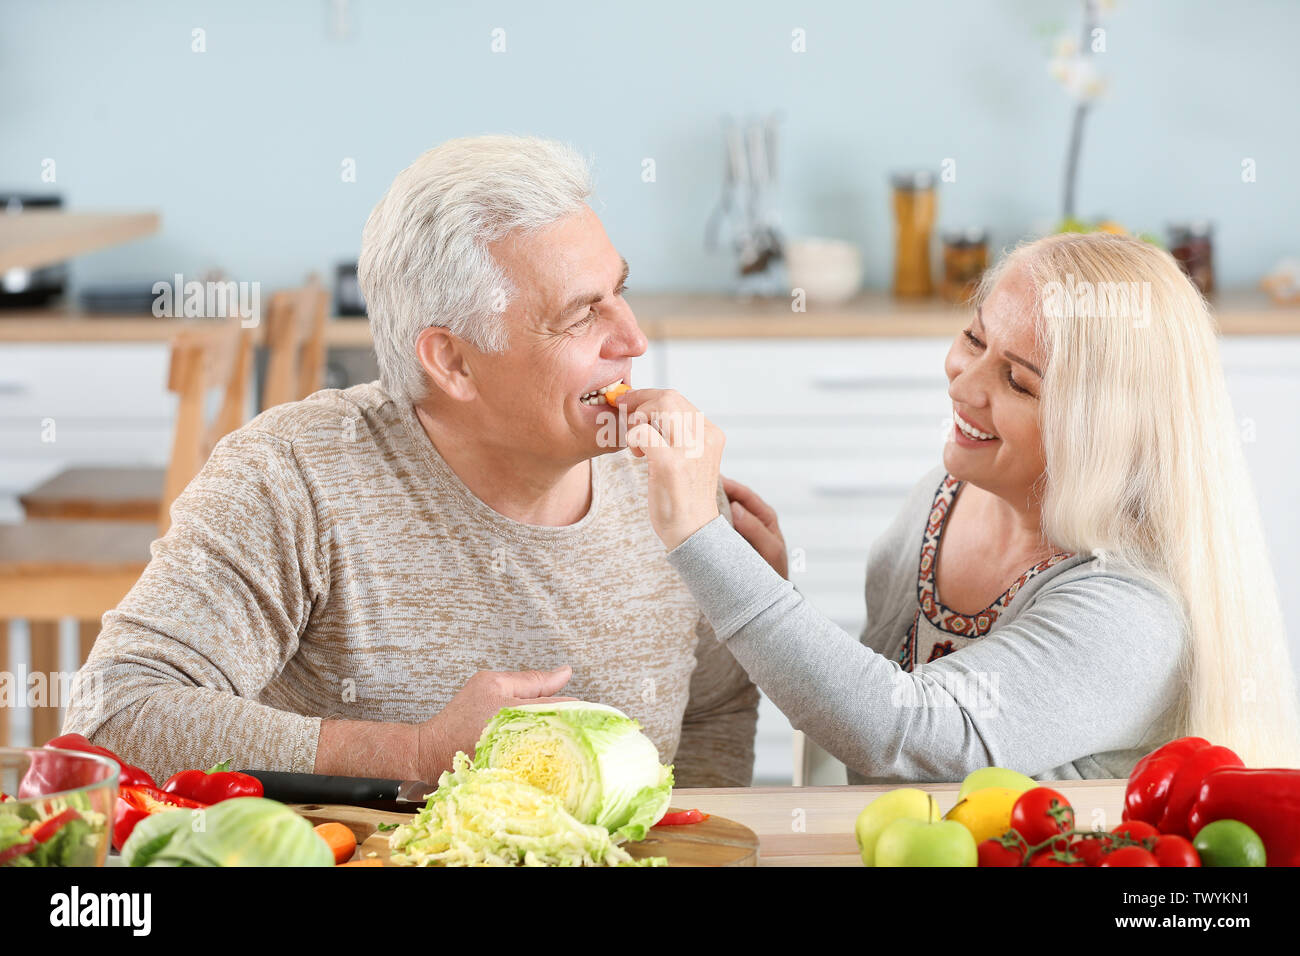 Mature woman feeding her husband in kitchen - Stock Image